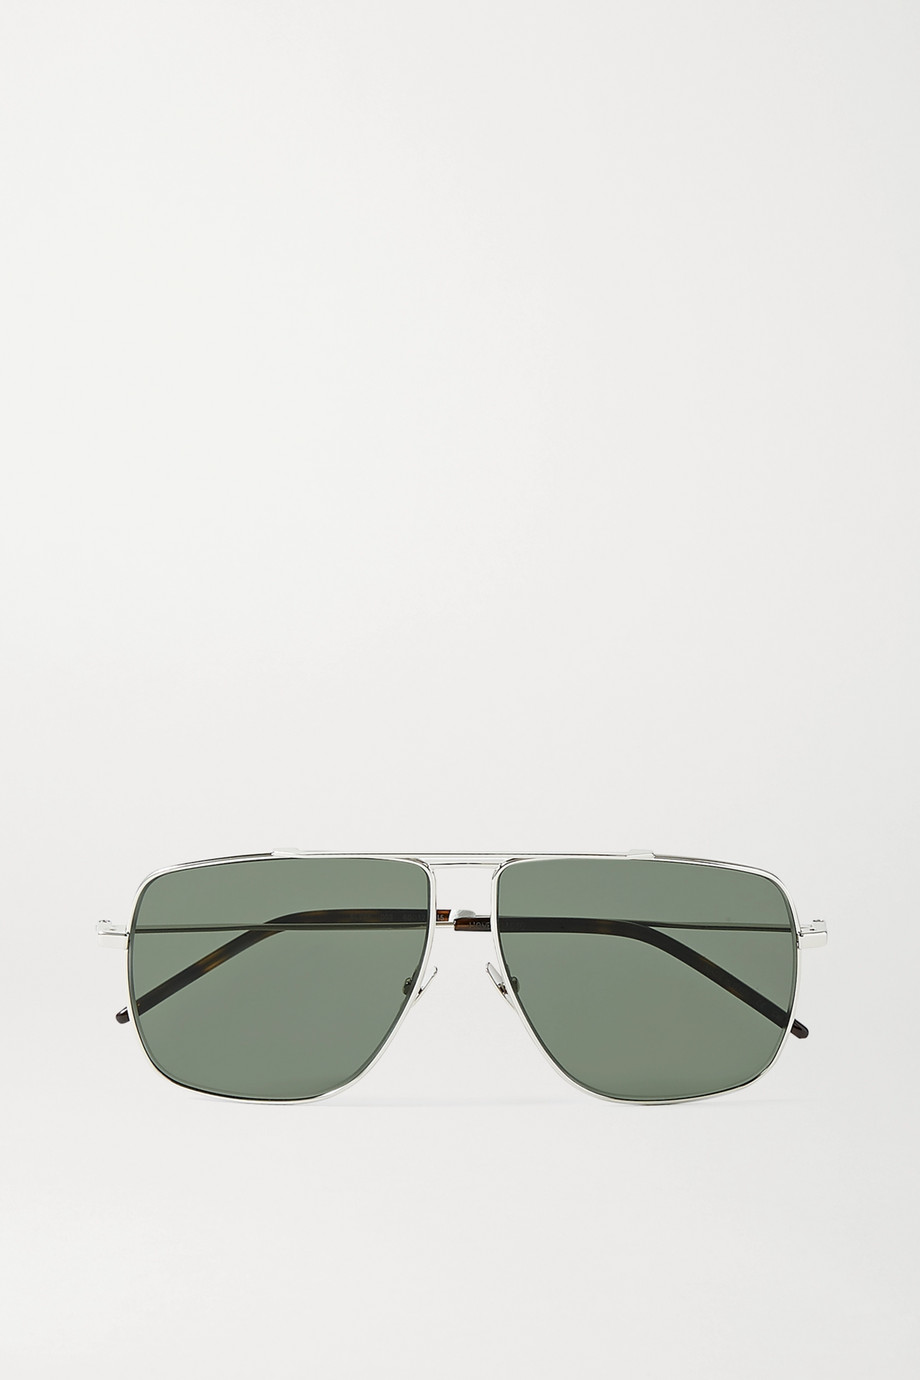 SAINT LAURENT Oversized aviator-style silver-tone and tortoiseshell acetate sunglasses